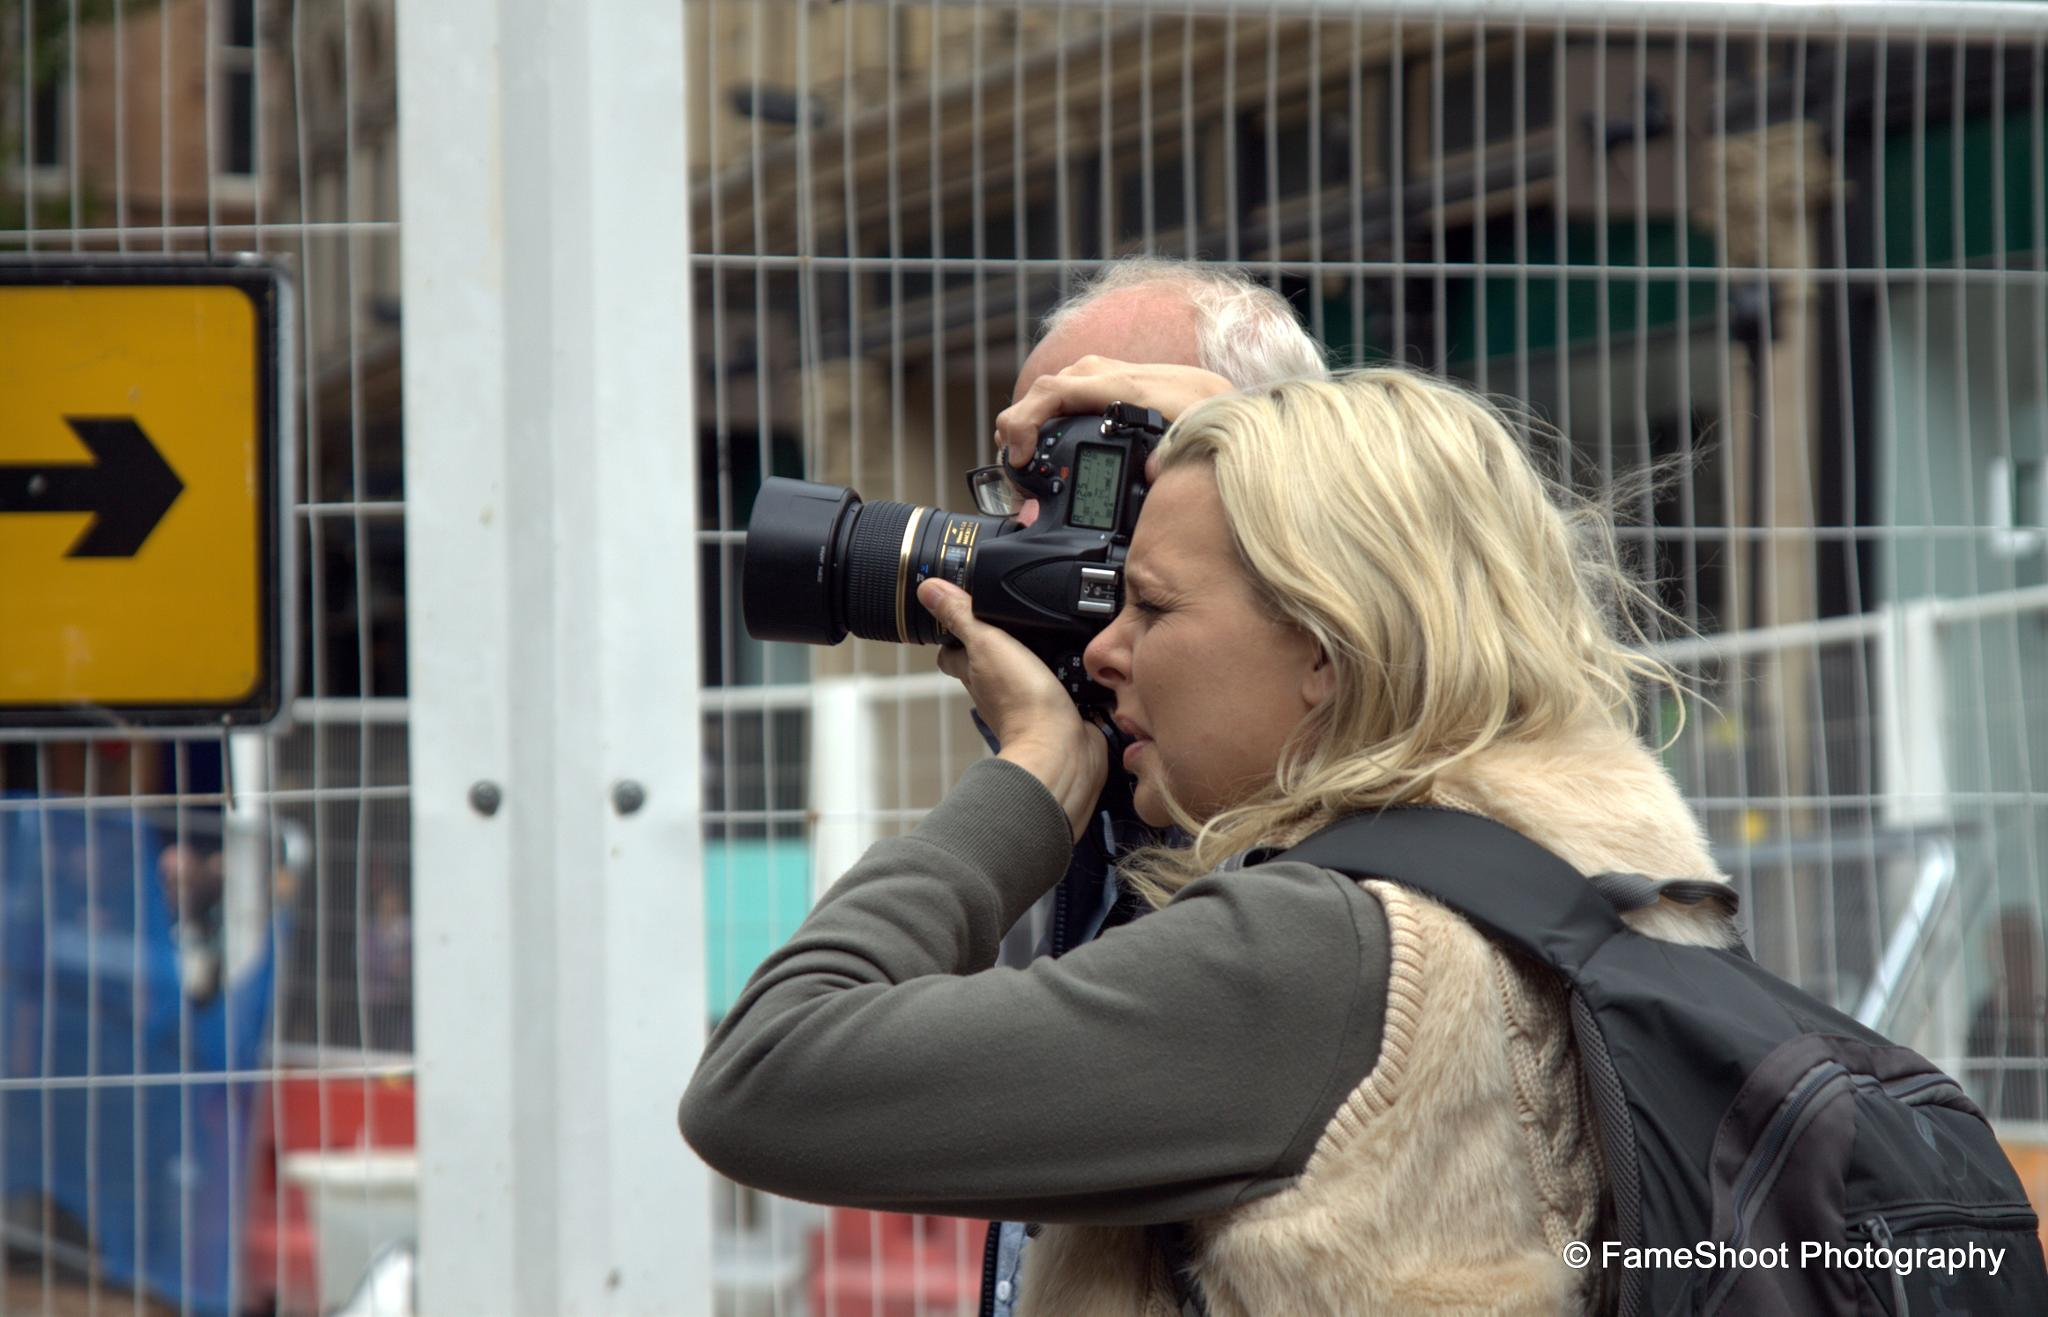 Paparazzi like me ;-) by Fame Shoot Photography